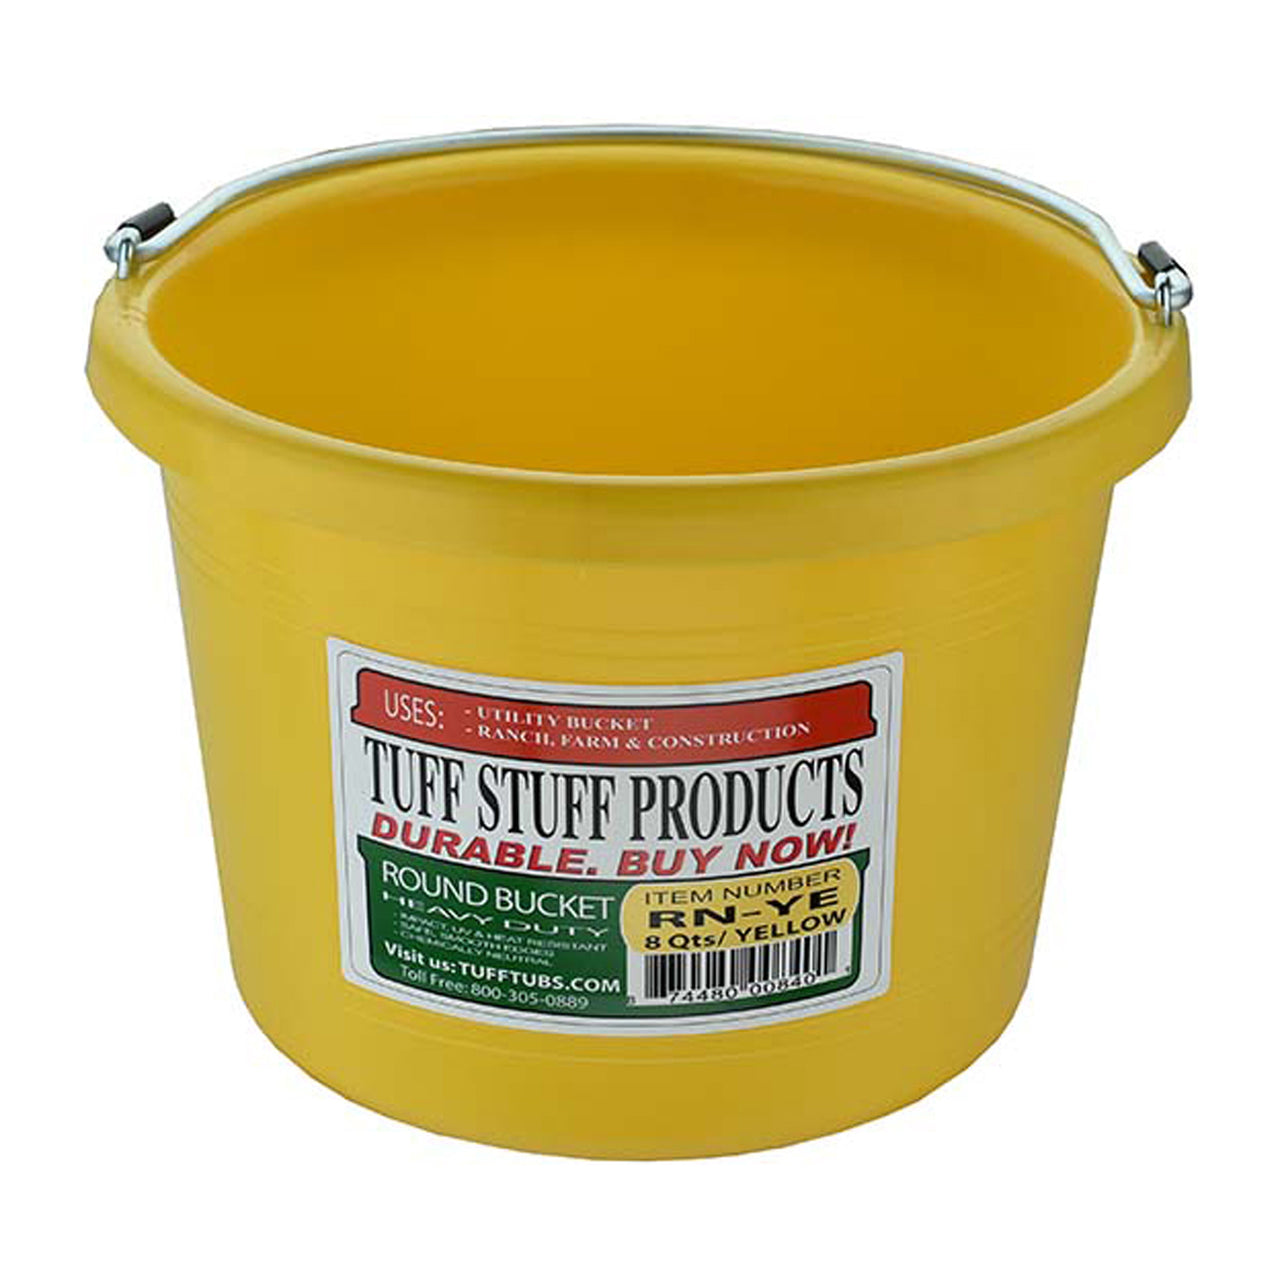 Tuff Stuff Round Bucket 8 Qts - Yellow - Buckets Pails Feeders Scoops Tubs Bottles Tuff Stuff - Canada